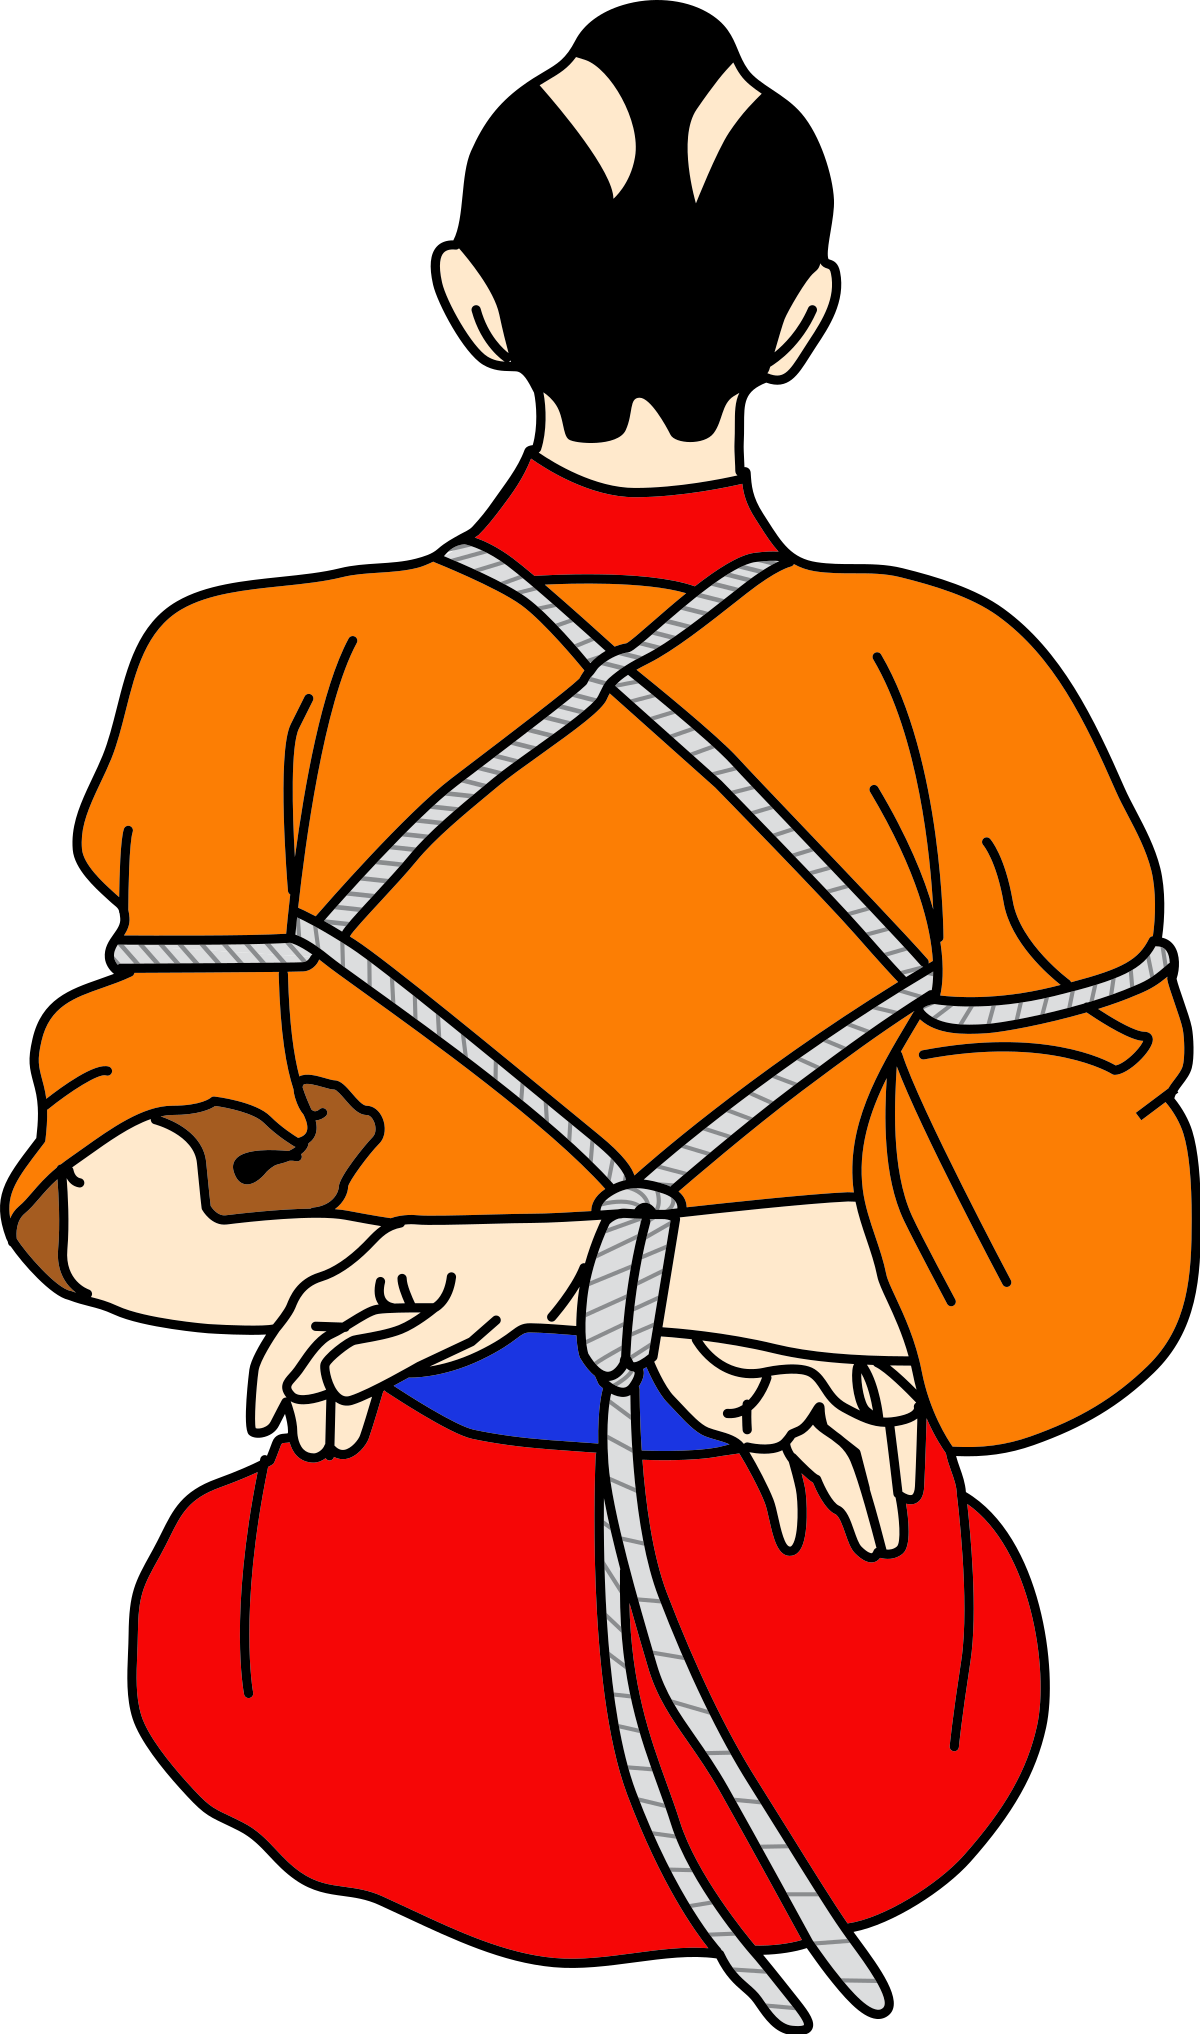 Handcuffs clipart prisoner. Hoj jutsu wikipedia